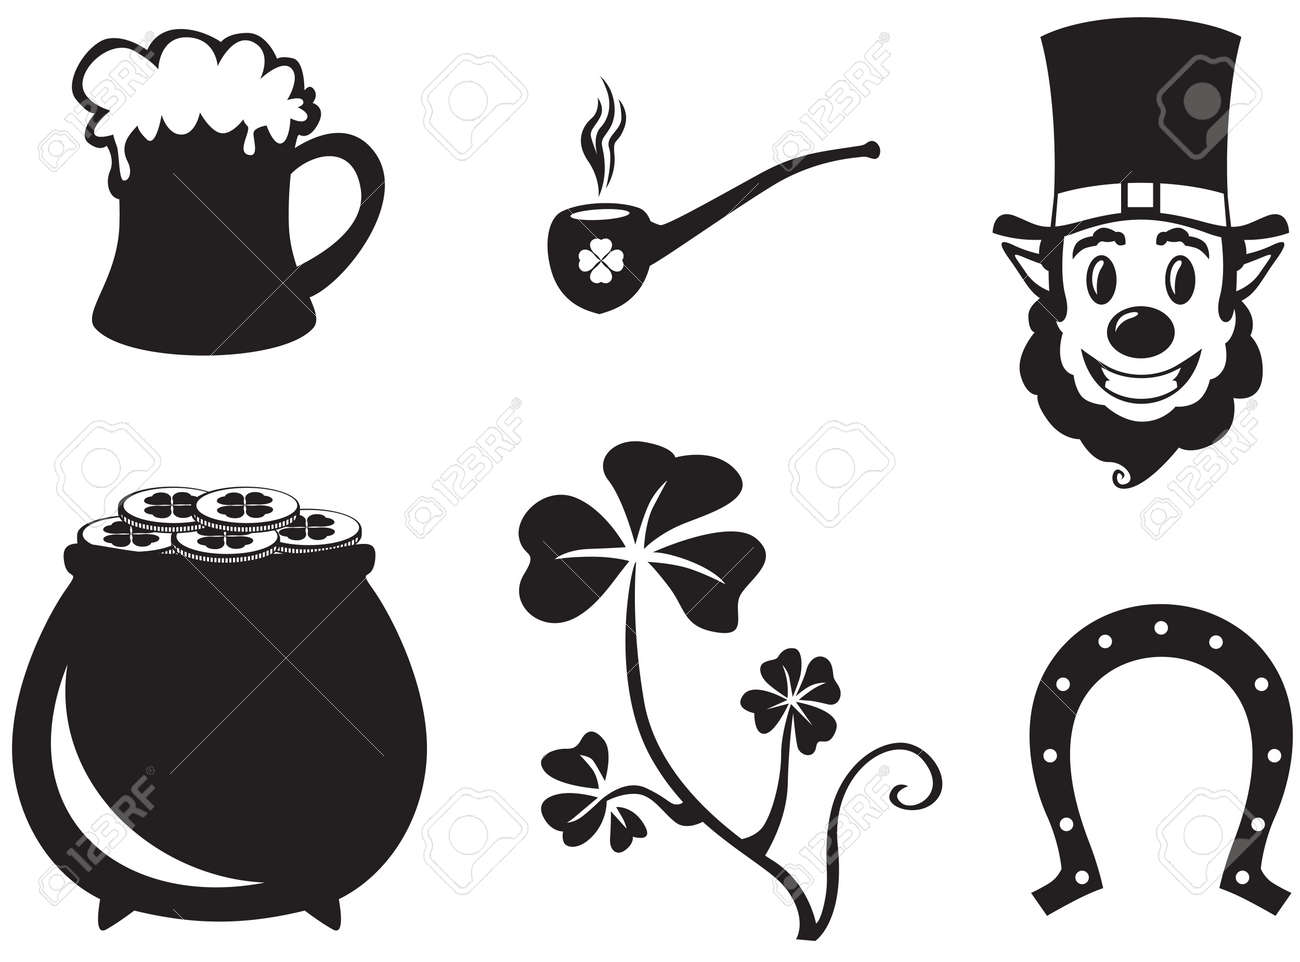 Set of silhouette images of St. Patrick's Day Stock Vector - 18036026